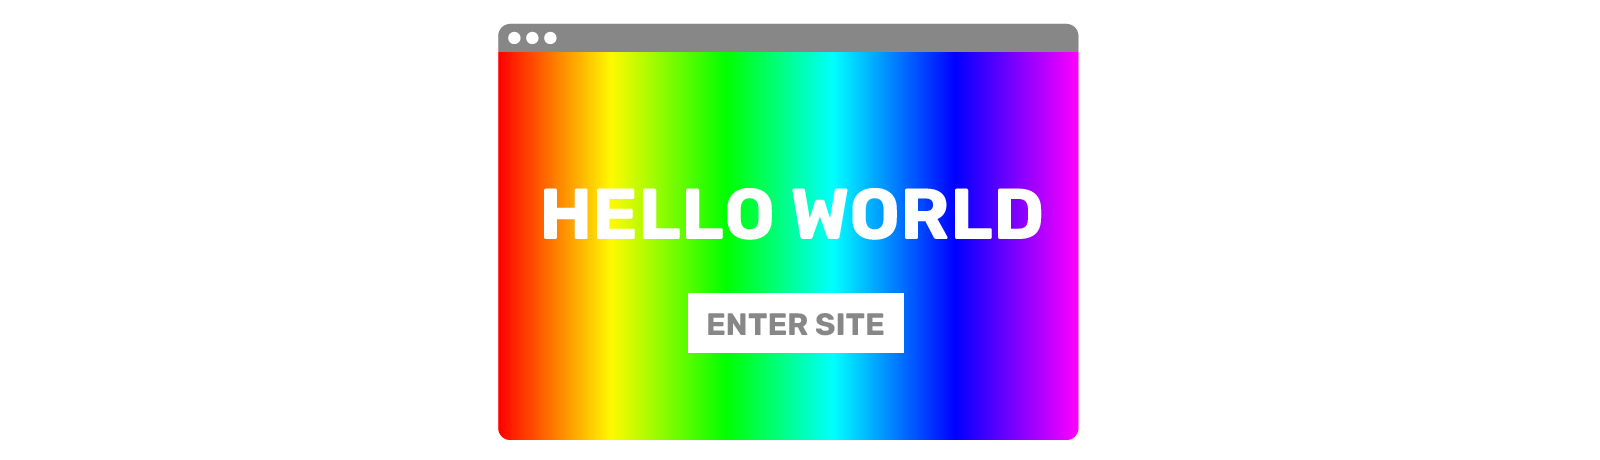 Four Mistakes That Cause Visitors to Immediately Leave Your Website - Too Much Color